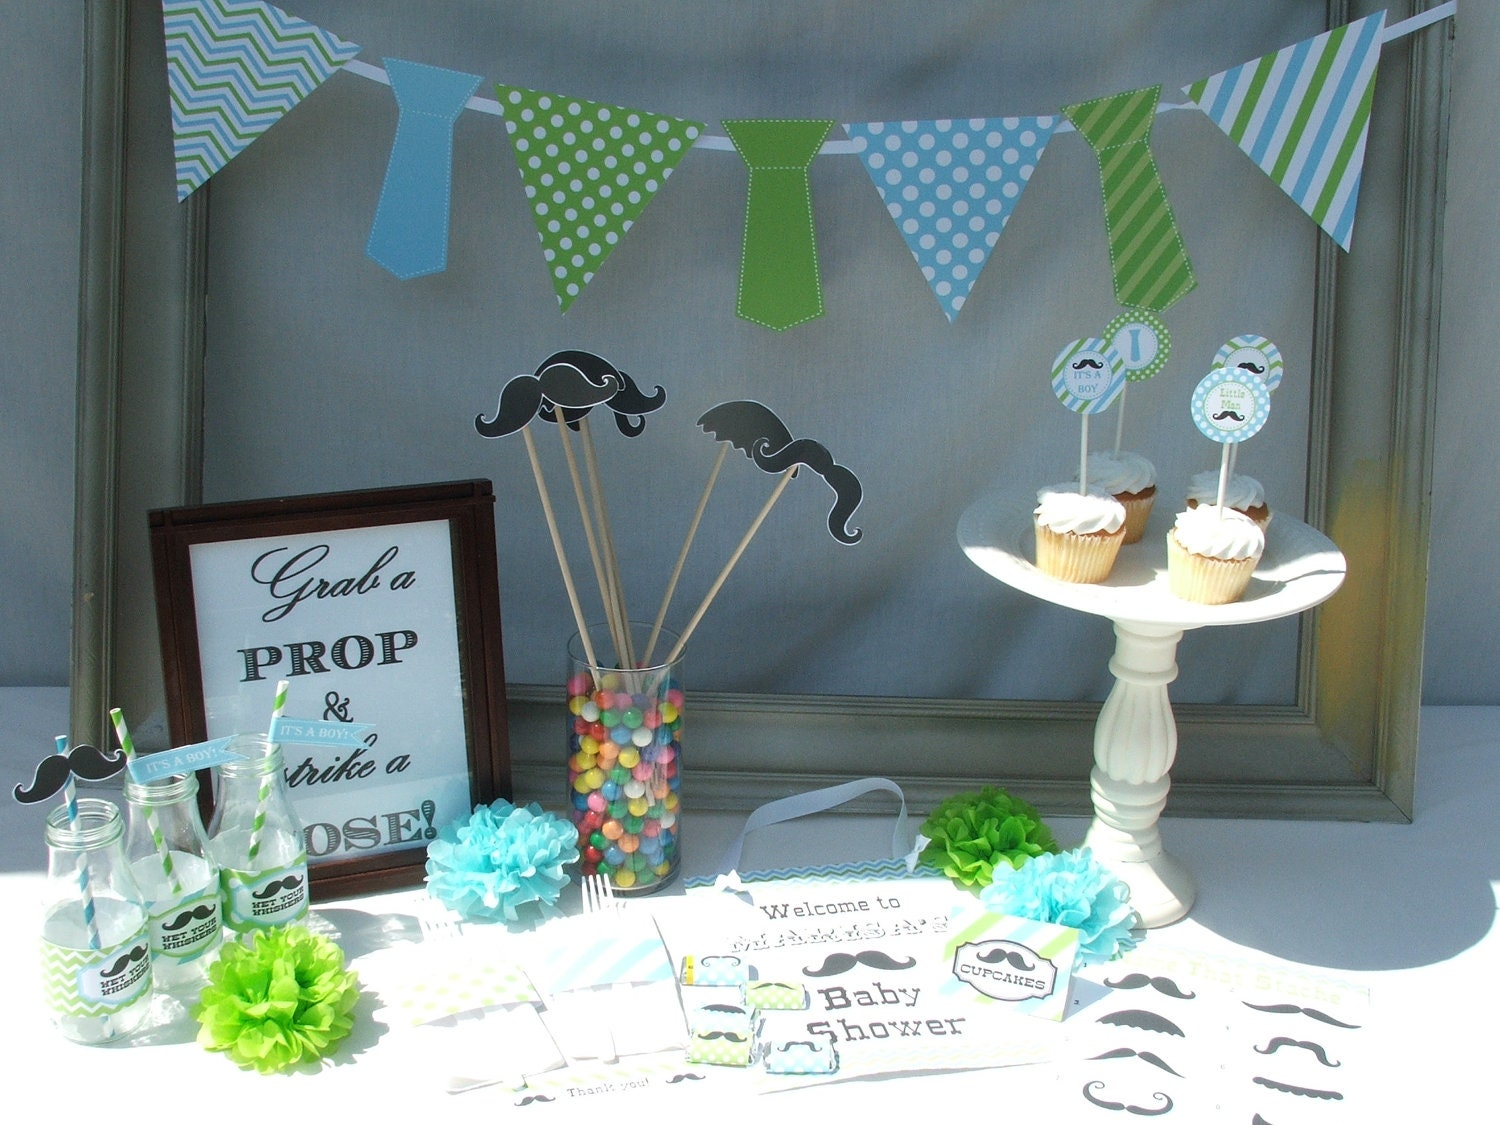 Boy baby shower decorations party favors ideas for Baby shower decoration ideas homemade